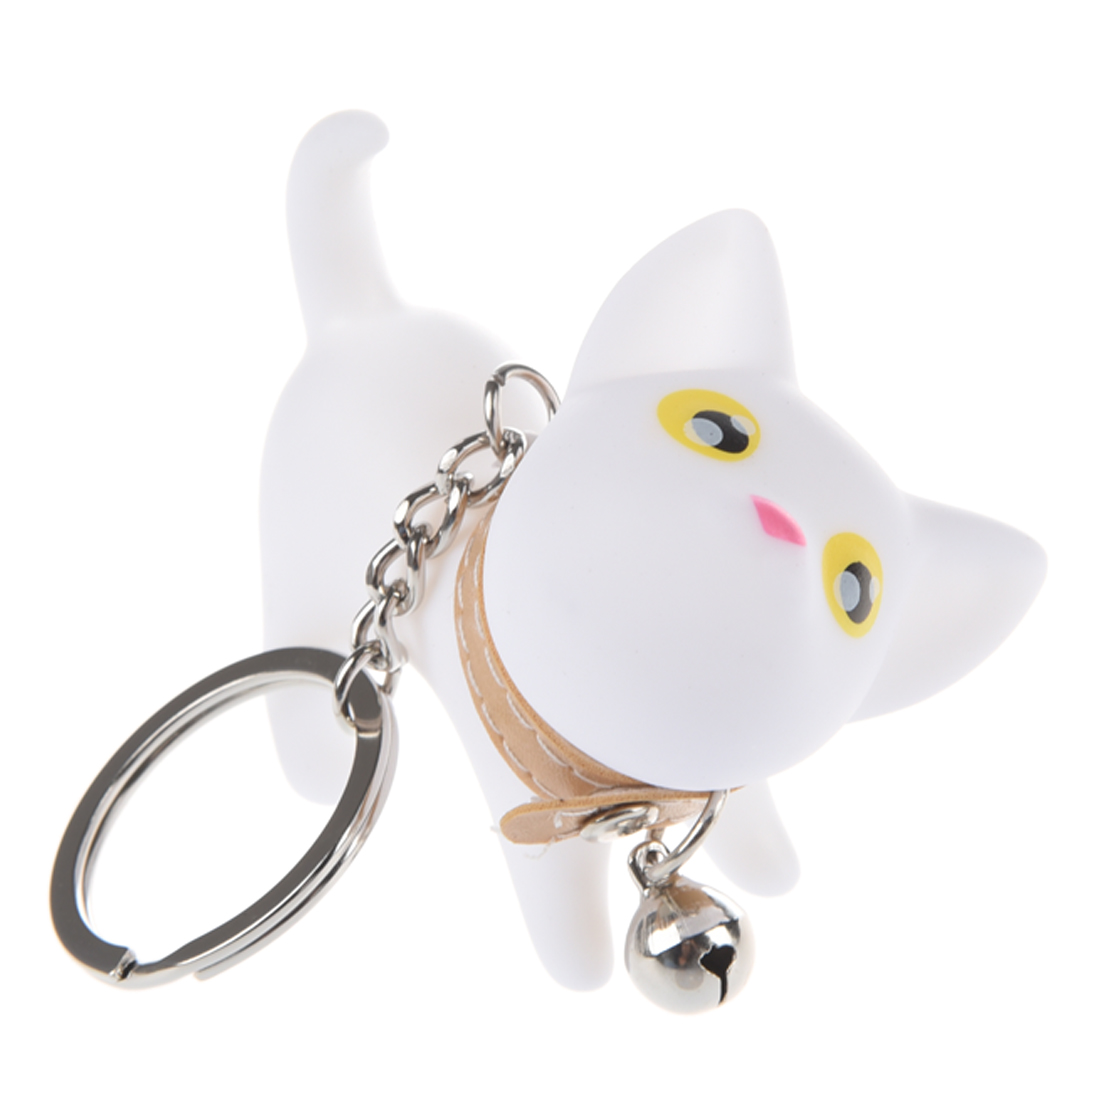 Cute Cat Key Chain/Kitten Key Ring/Bag Ornament With Bell-White